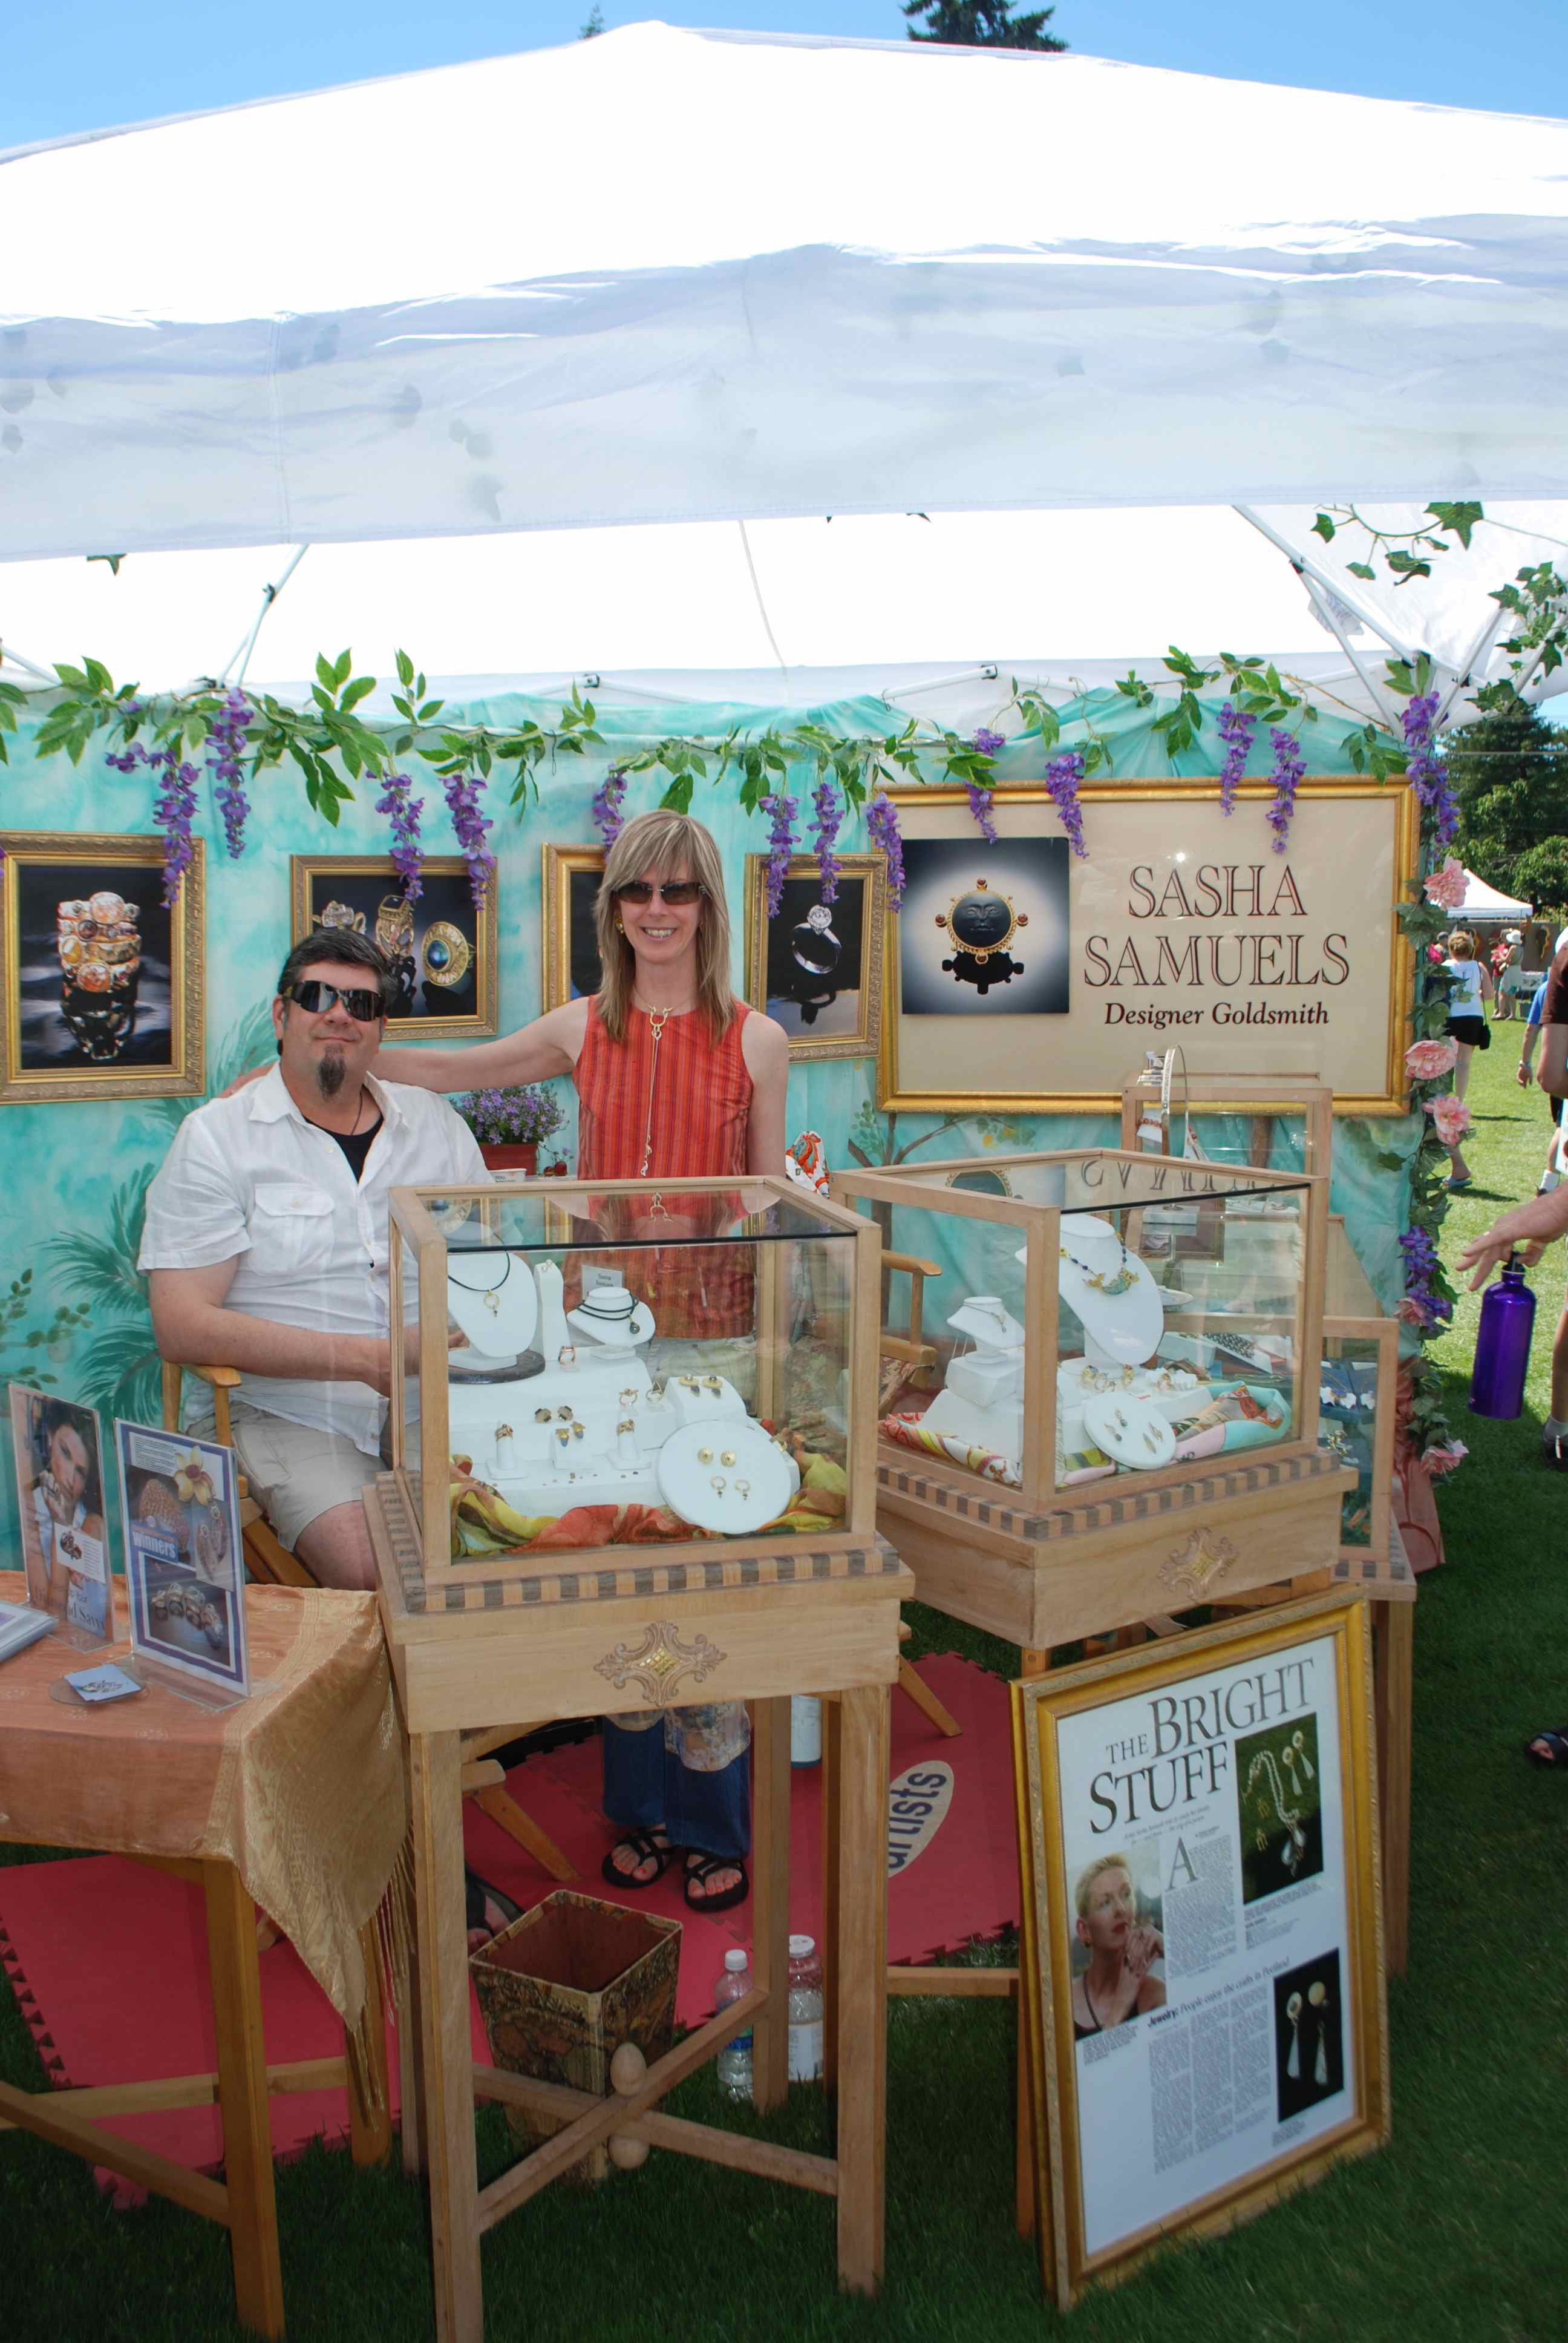 Festival: 2011 Craft Faire - Call For Entry